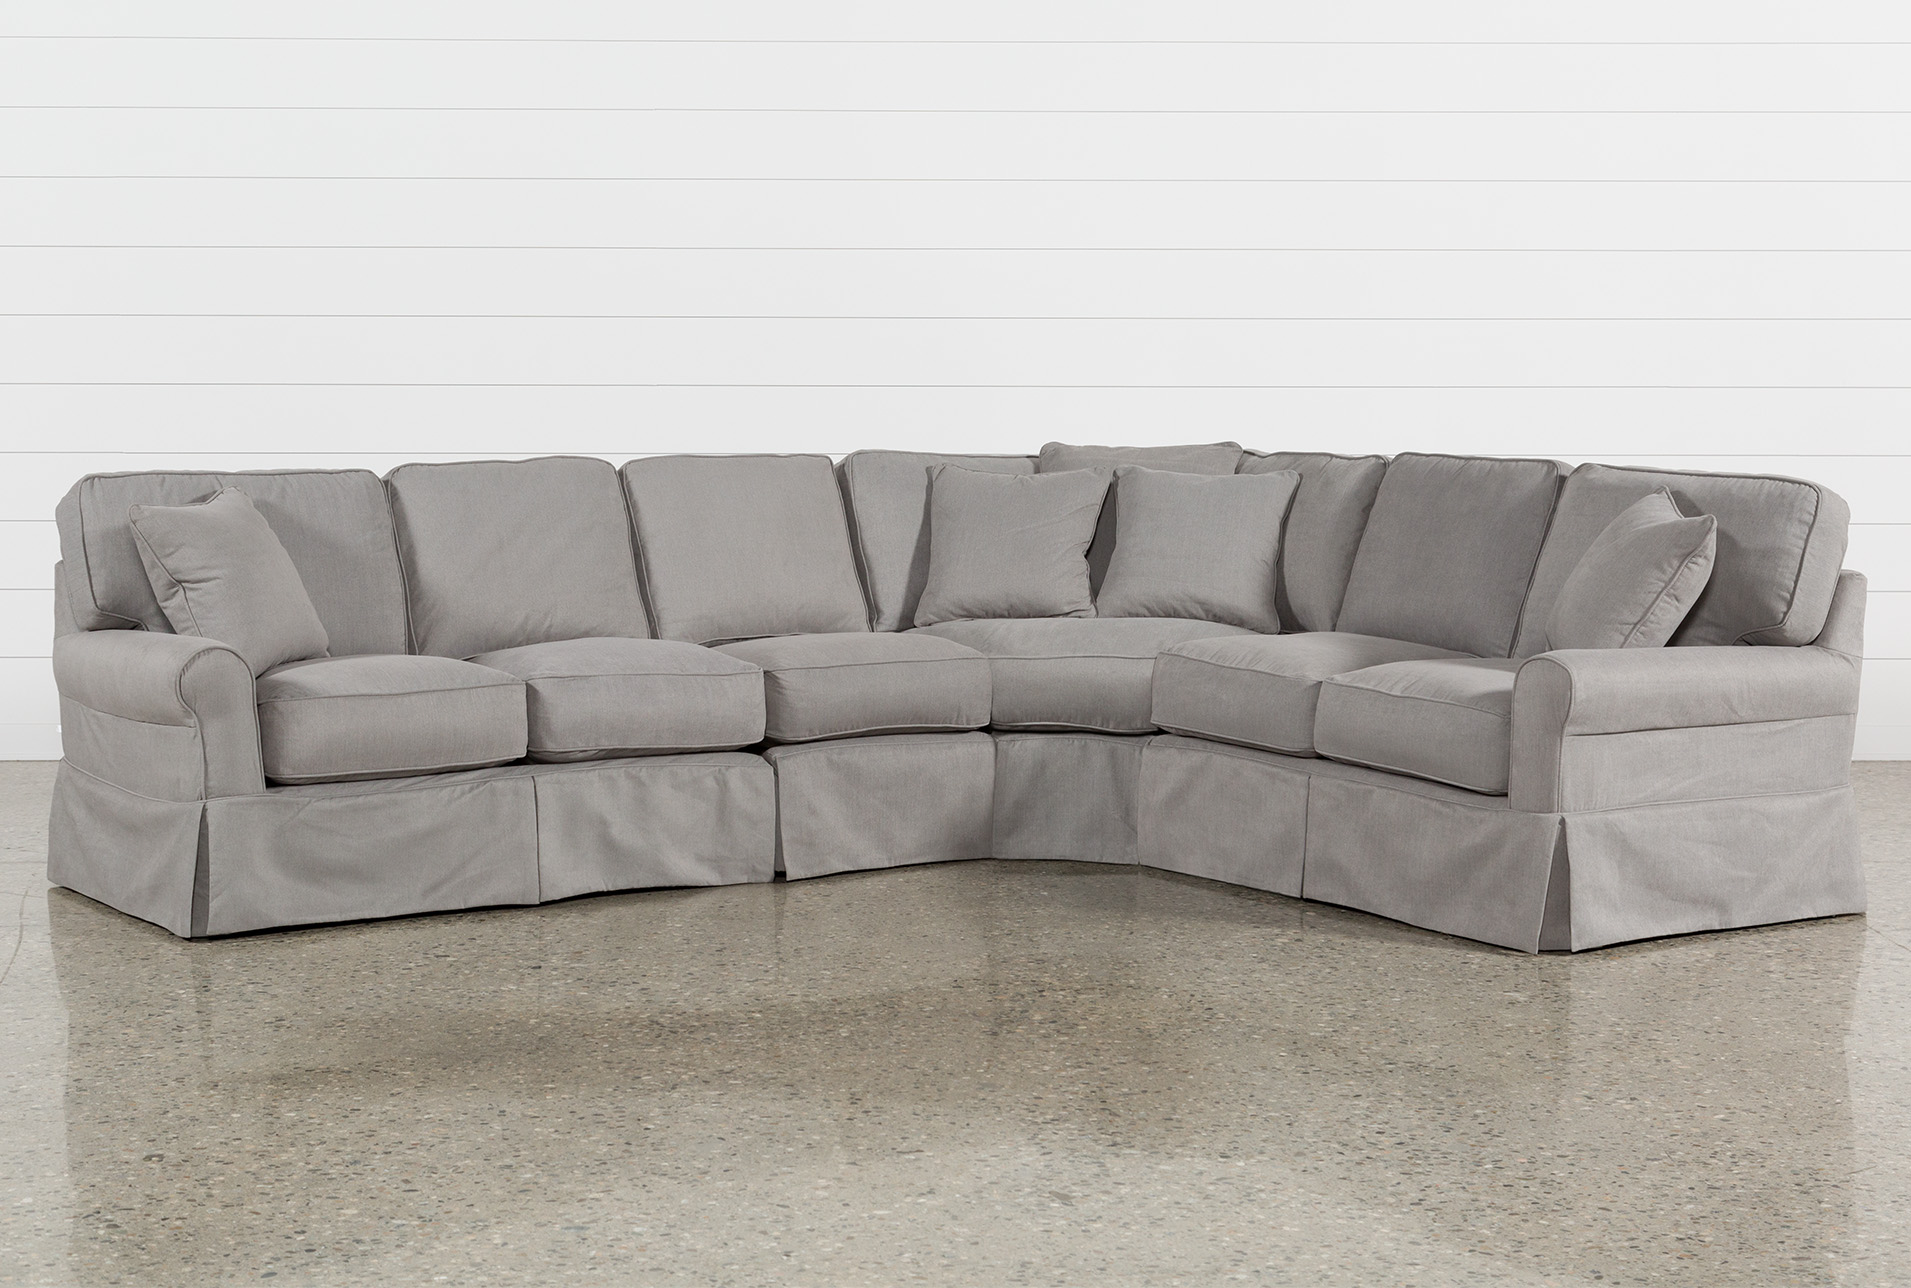 Carlyle Slipcovered 4 Piece Sectional   360